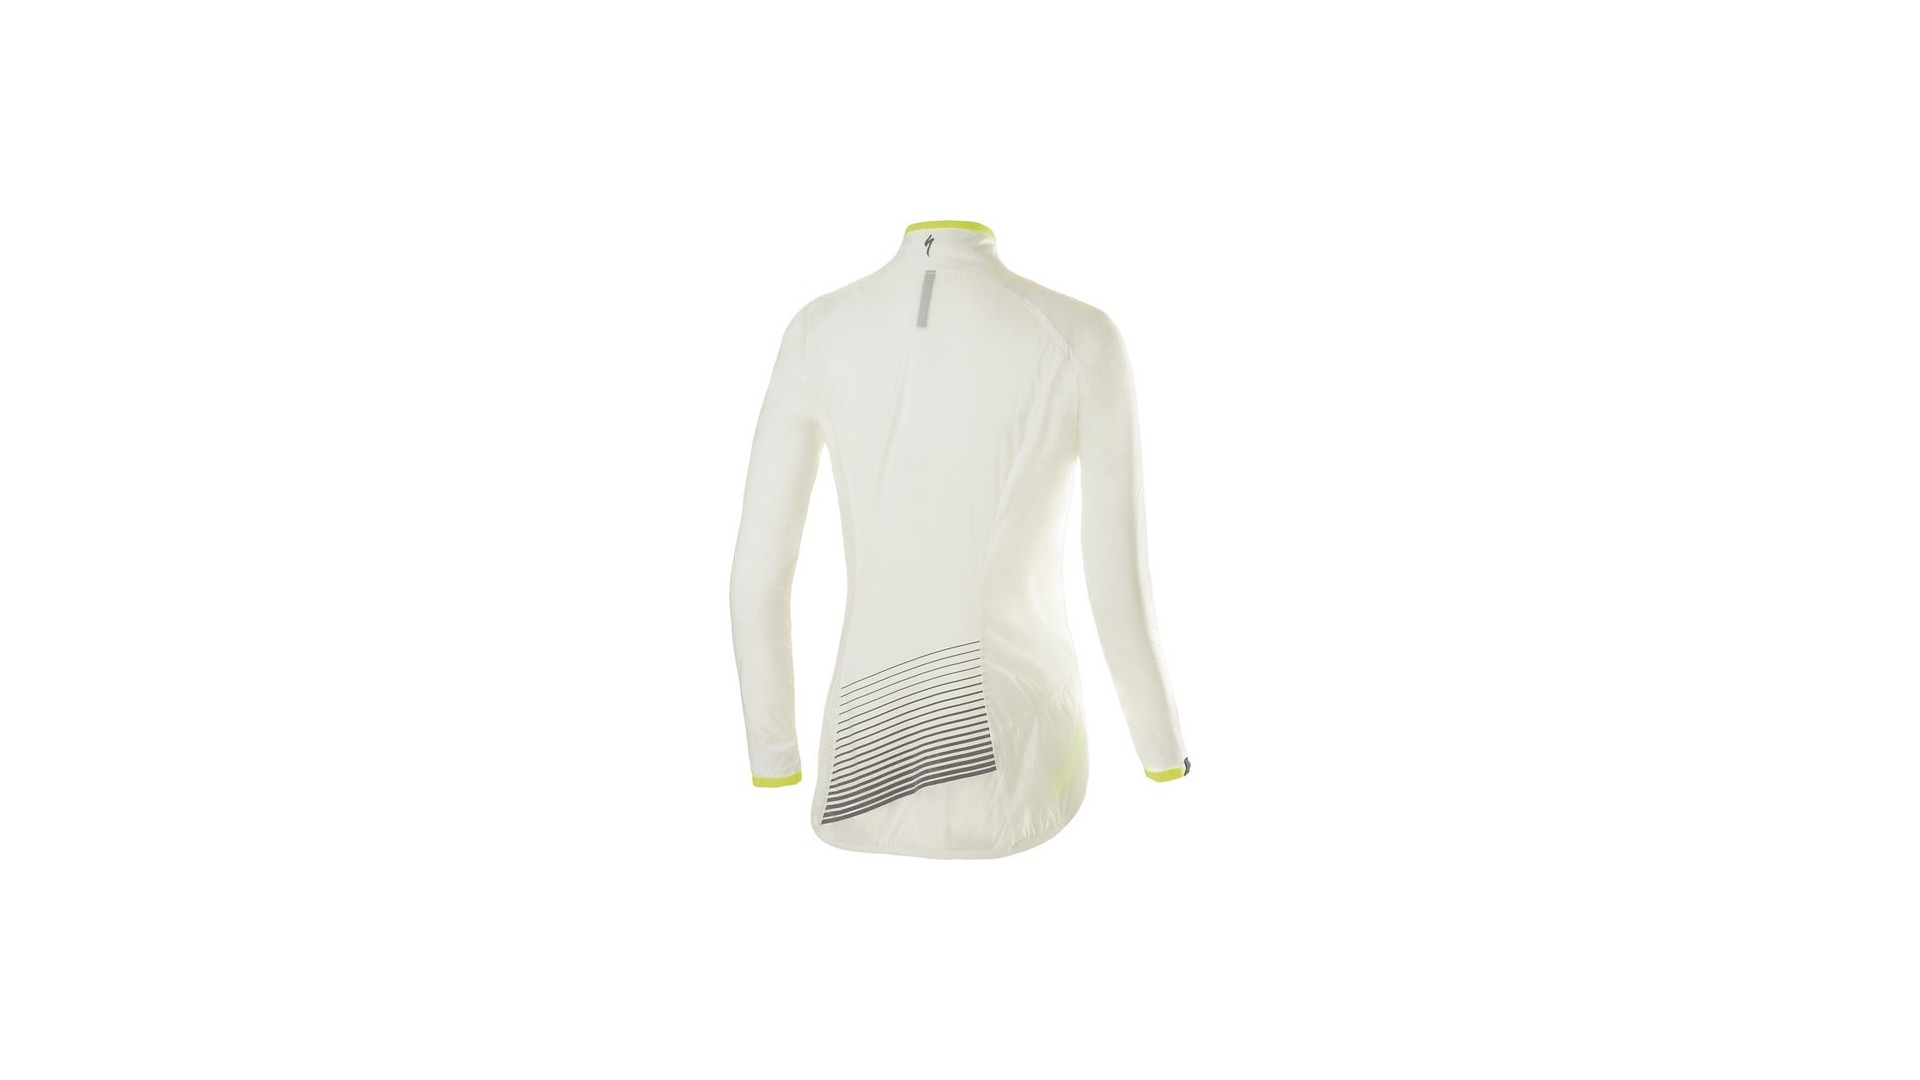 Deflect Comp Chaqueta Specialized Mujer Pack 8 unidades (S1 M3 L3 XL1) White 2 IBKBike.es